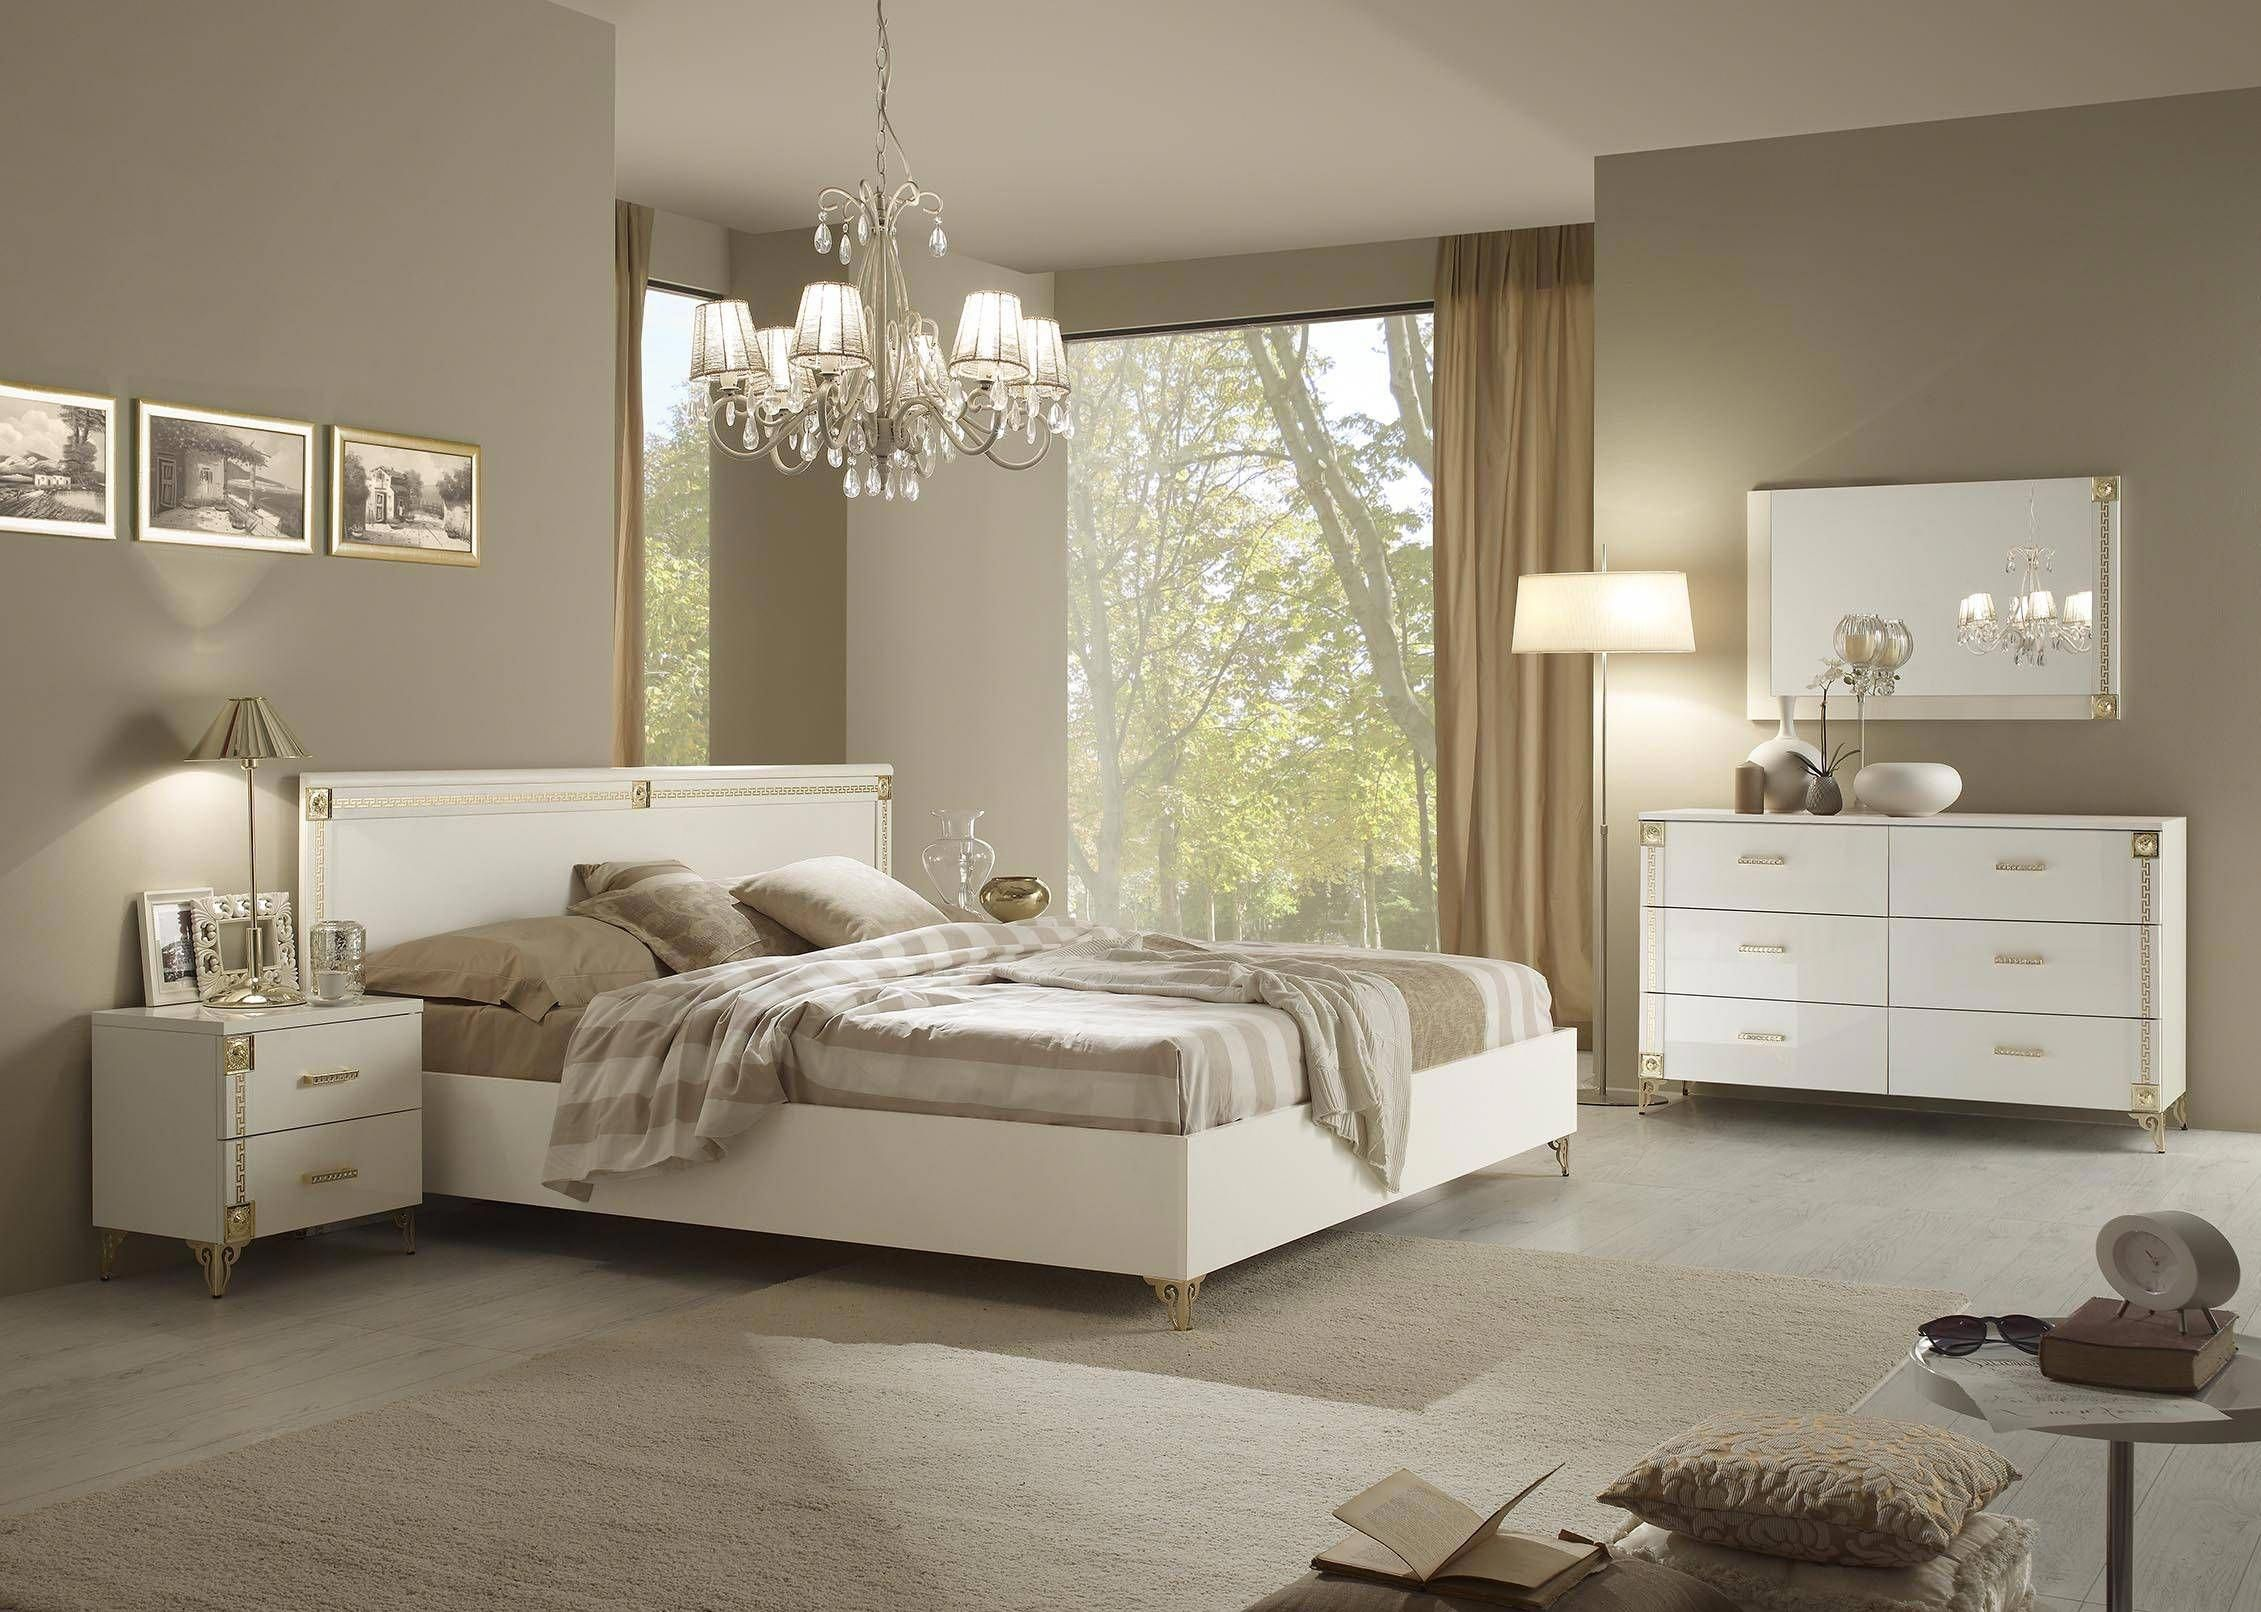 Upscale Cly White Bedroom Suite With Stylish Gold Accents Add A Splash Of Elegance And True Beauty To Any This Wonderfully Extravagant Bed